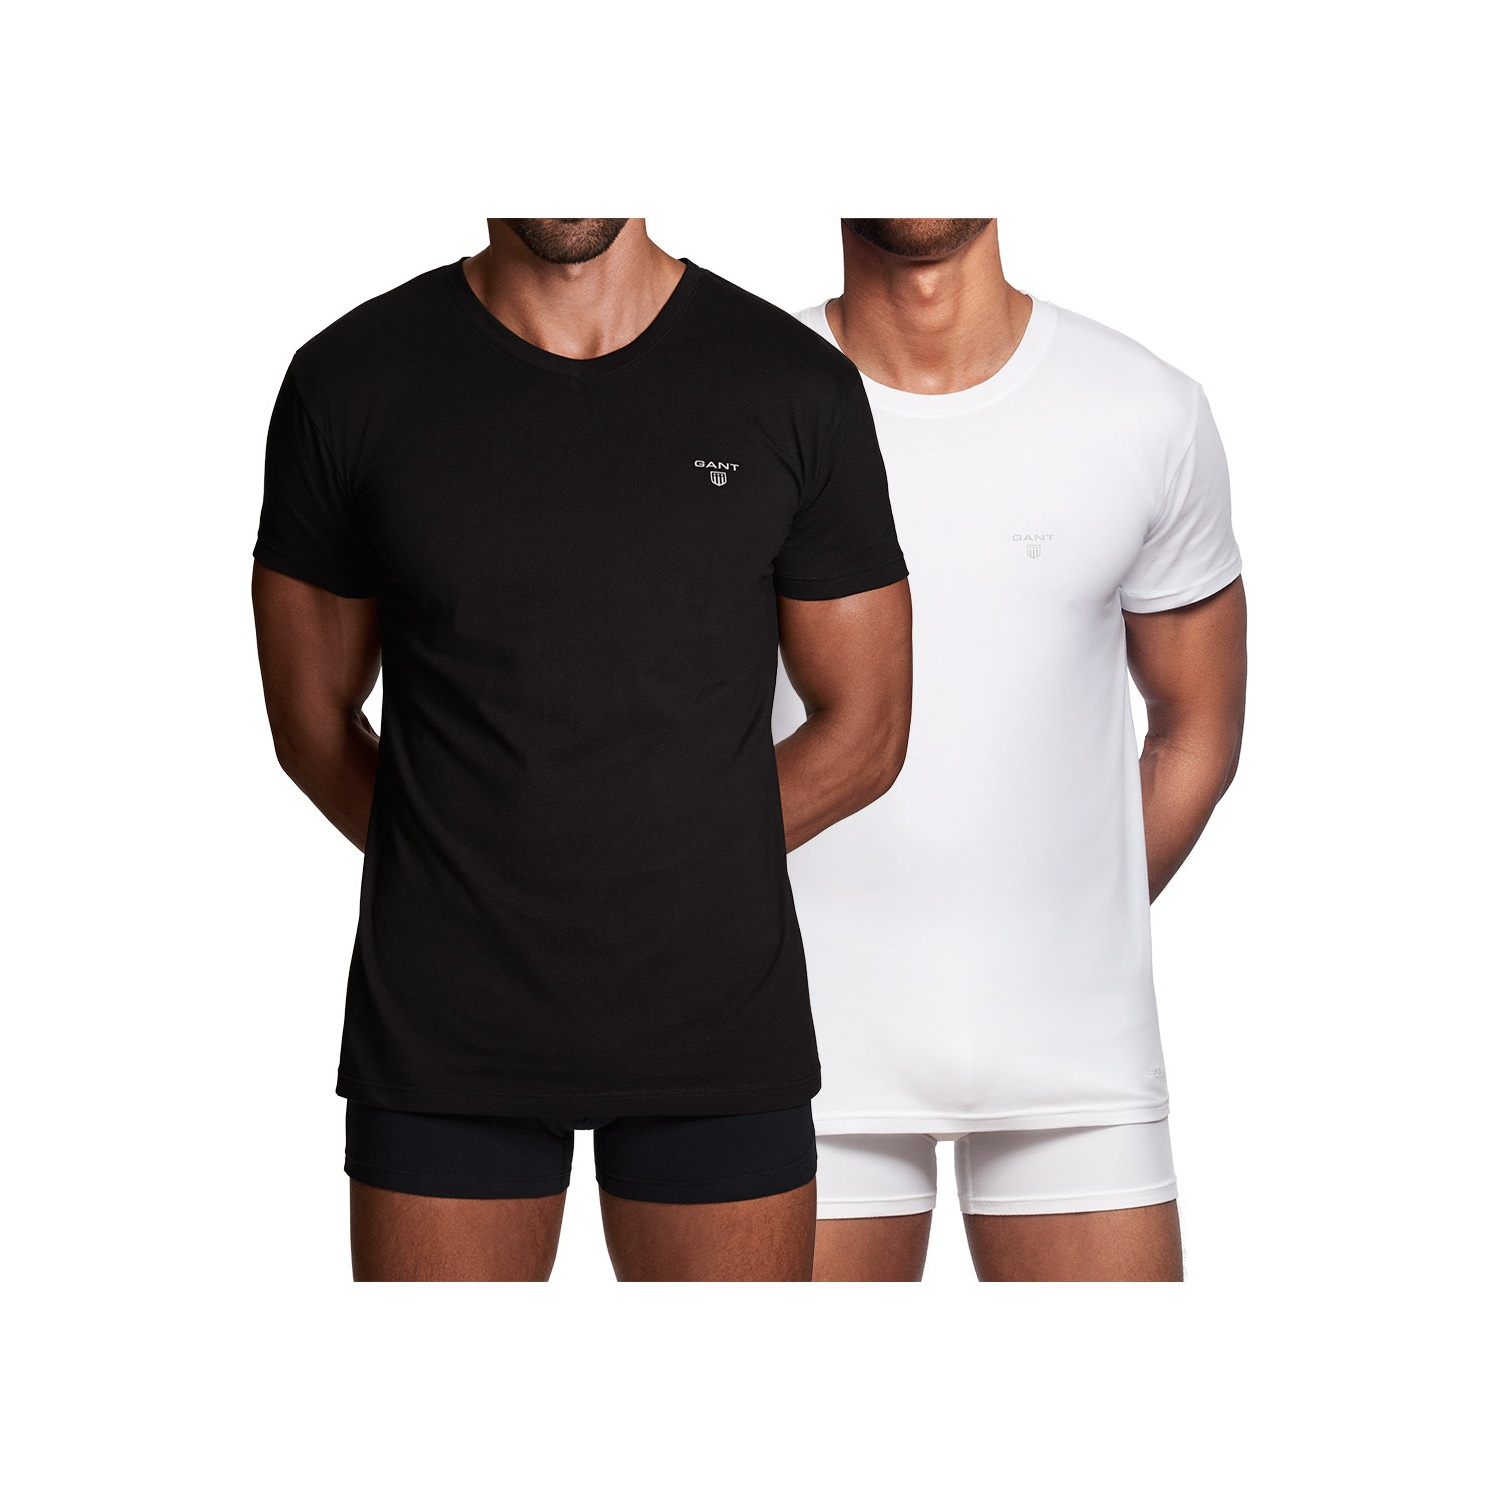 GANT 2-Pack Basic T-Shirts